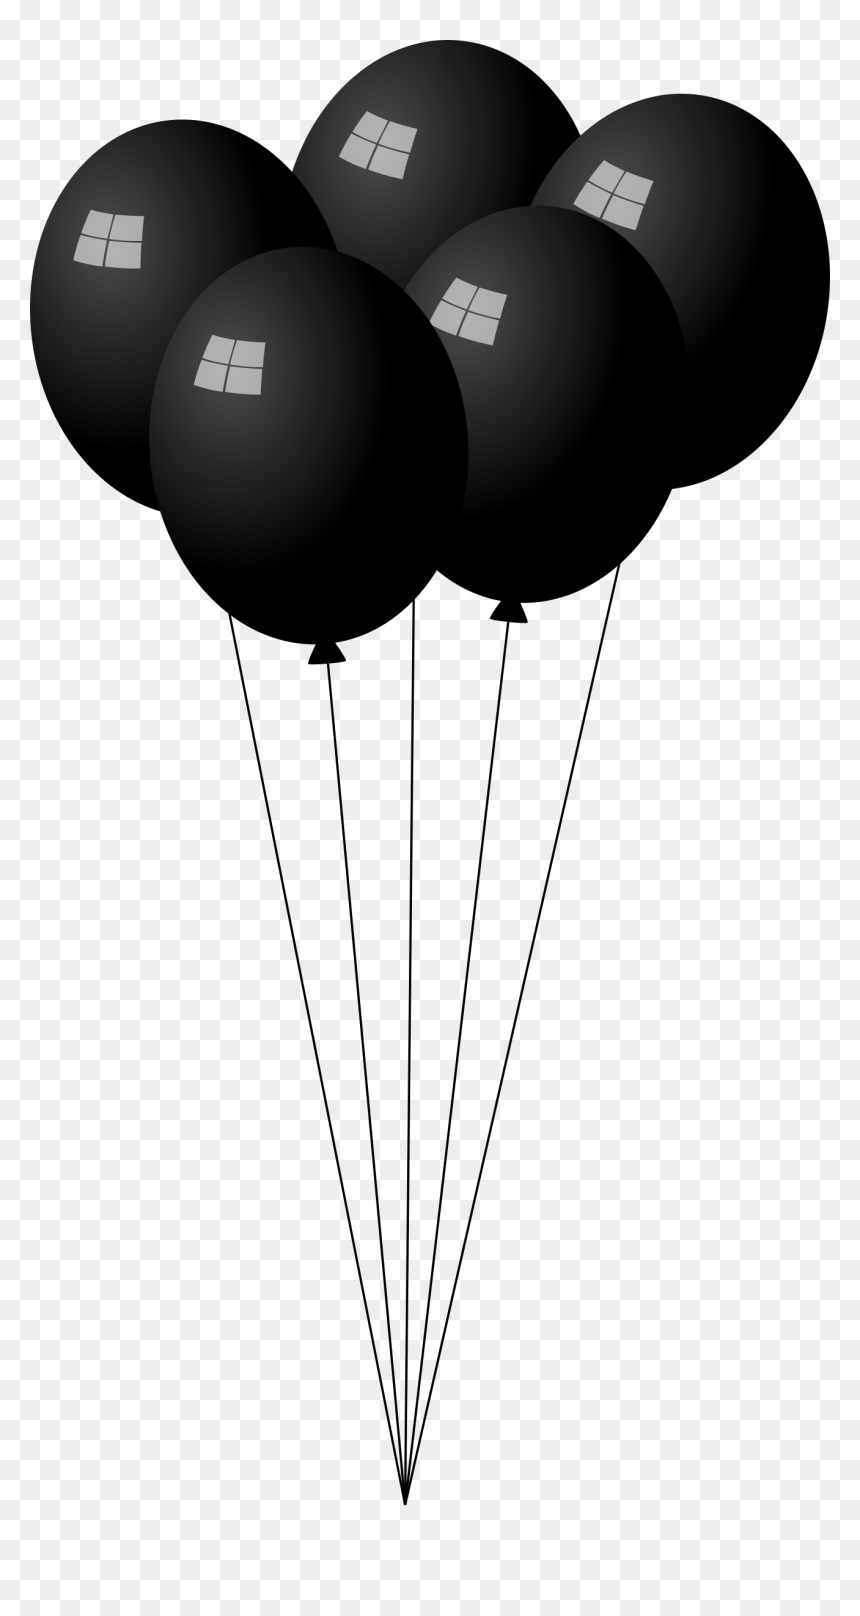 Black Balloons Clipart, HD Png Download